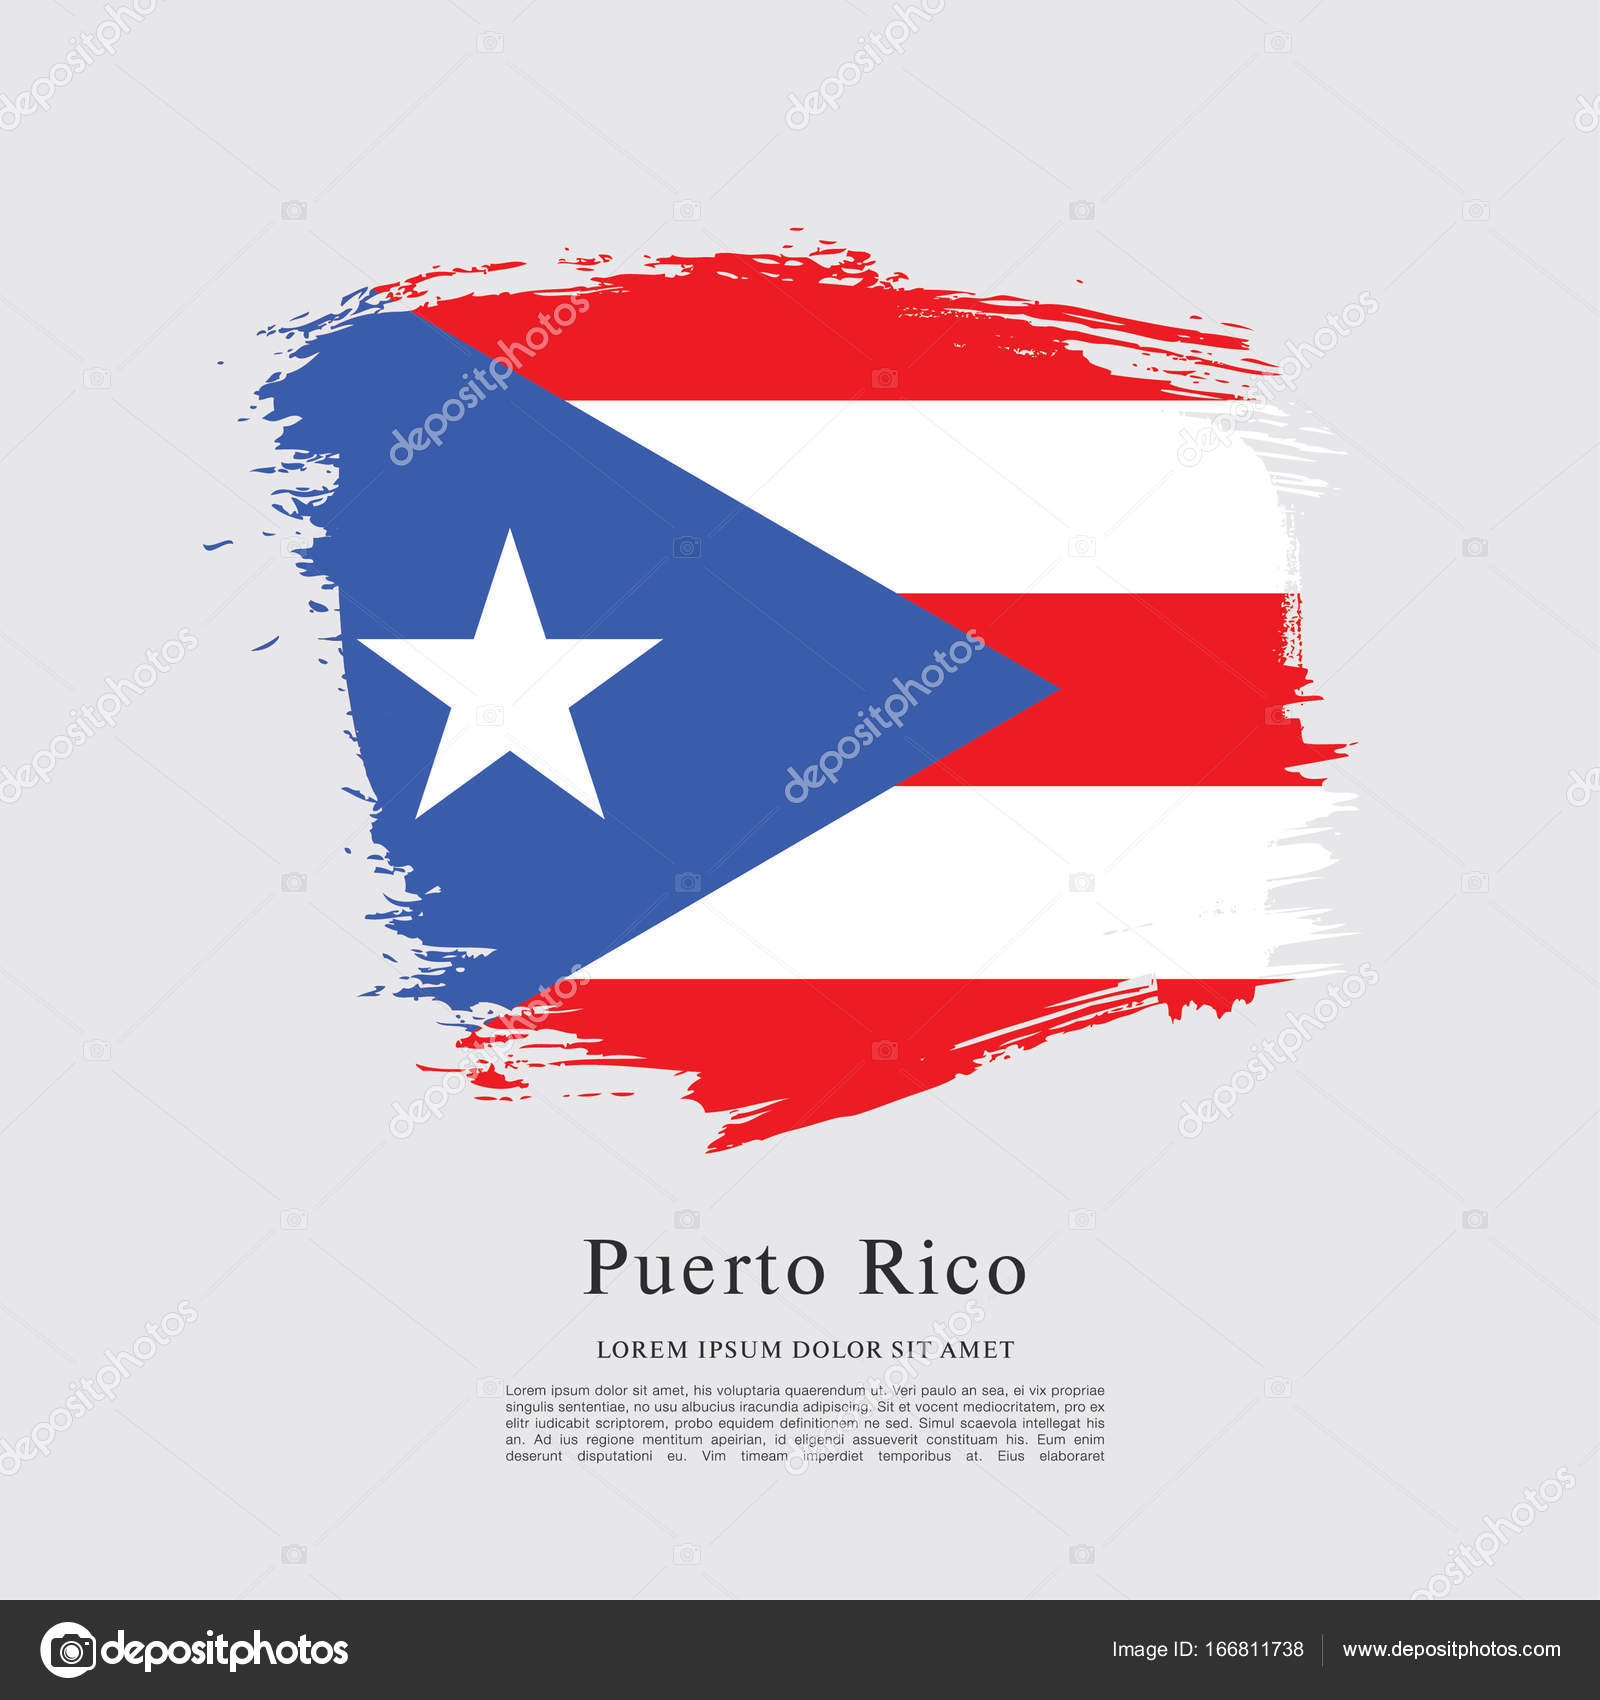 Flag of puerto rico flag stock vector igorvkv 166811738 flag of puerto rico flag stock vector biocorpaavc Choice Image